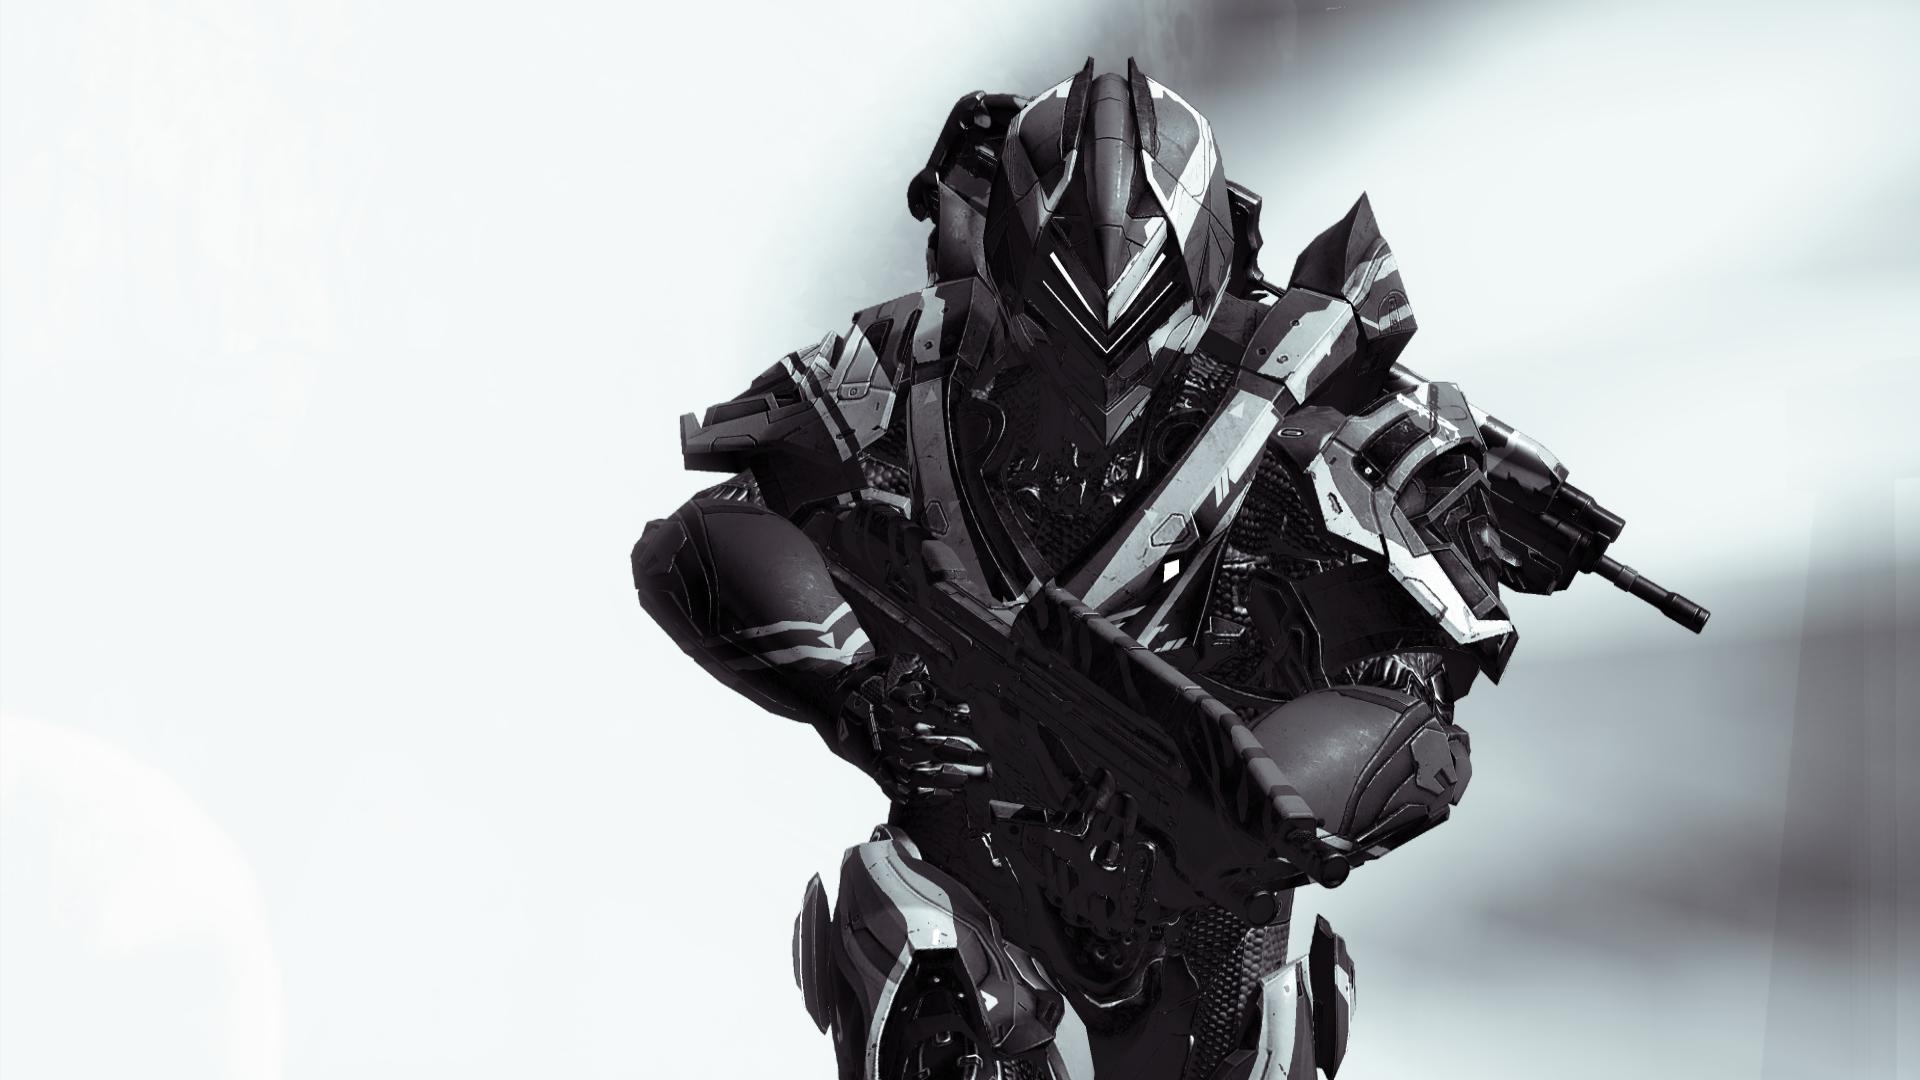 1920x1080px Awesome Halo 4 Browser Themes amp Desktop Wall Paper 1920x1080